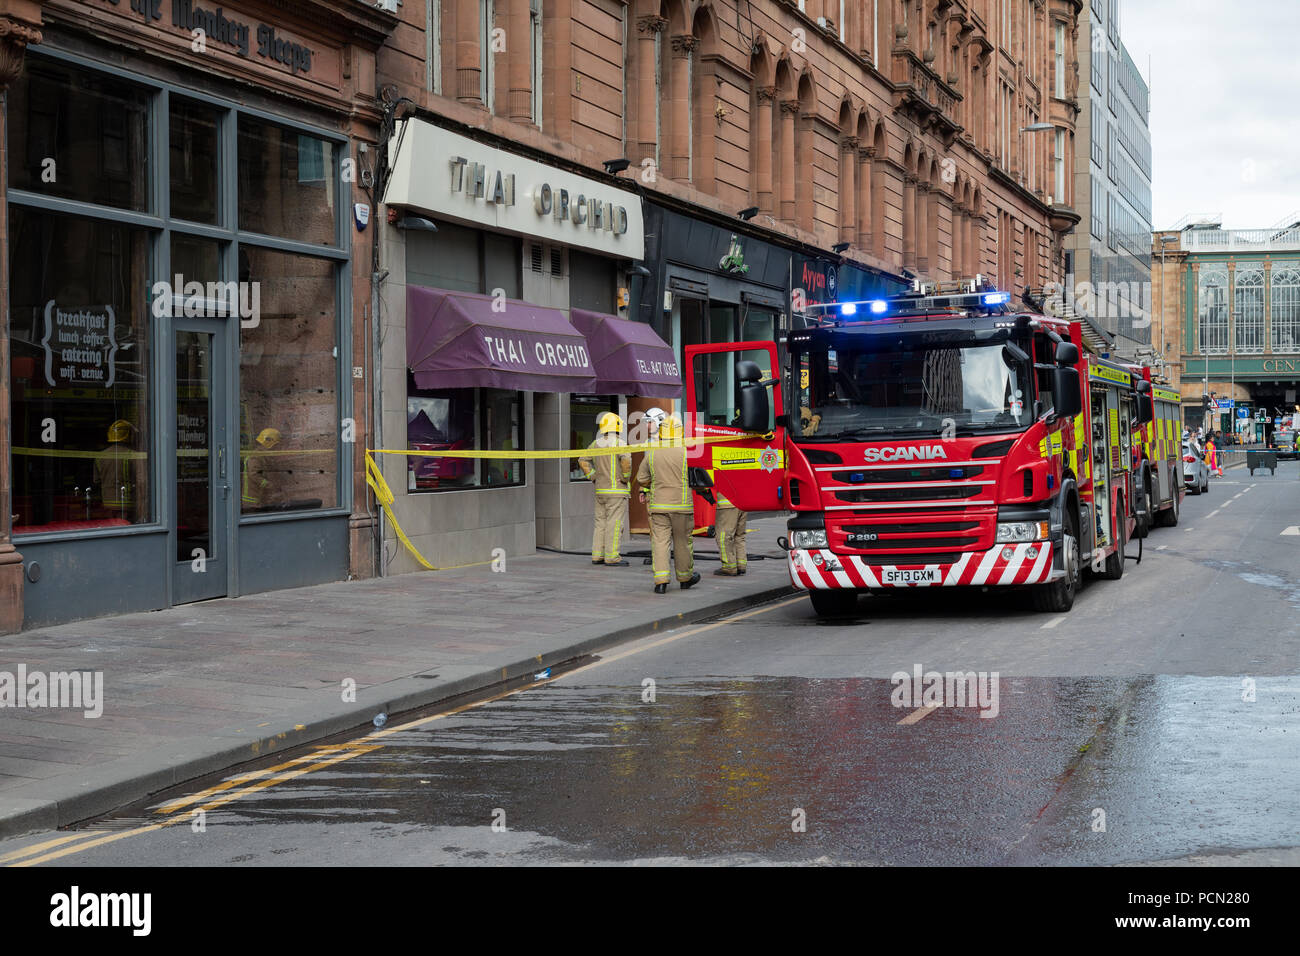 Argyle Street, Glasgow, United Kingdom, Friday 3rd August 2018. A popular city centre restaurant has gone on fire closing Glasgow's The Thai Orchid after being badly damaged in a fire which started on Friday 3rd August 2018. Argyle street outside the restaurant was closed to traffic and pedestrians causing significant congestion in the surrounding area. - Stock Image